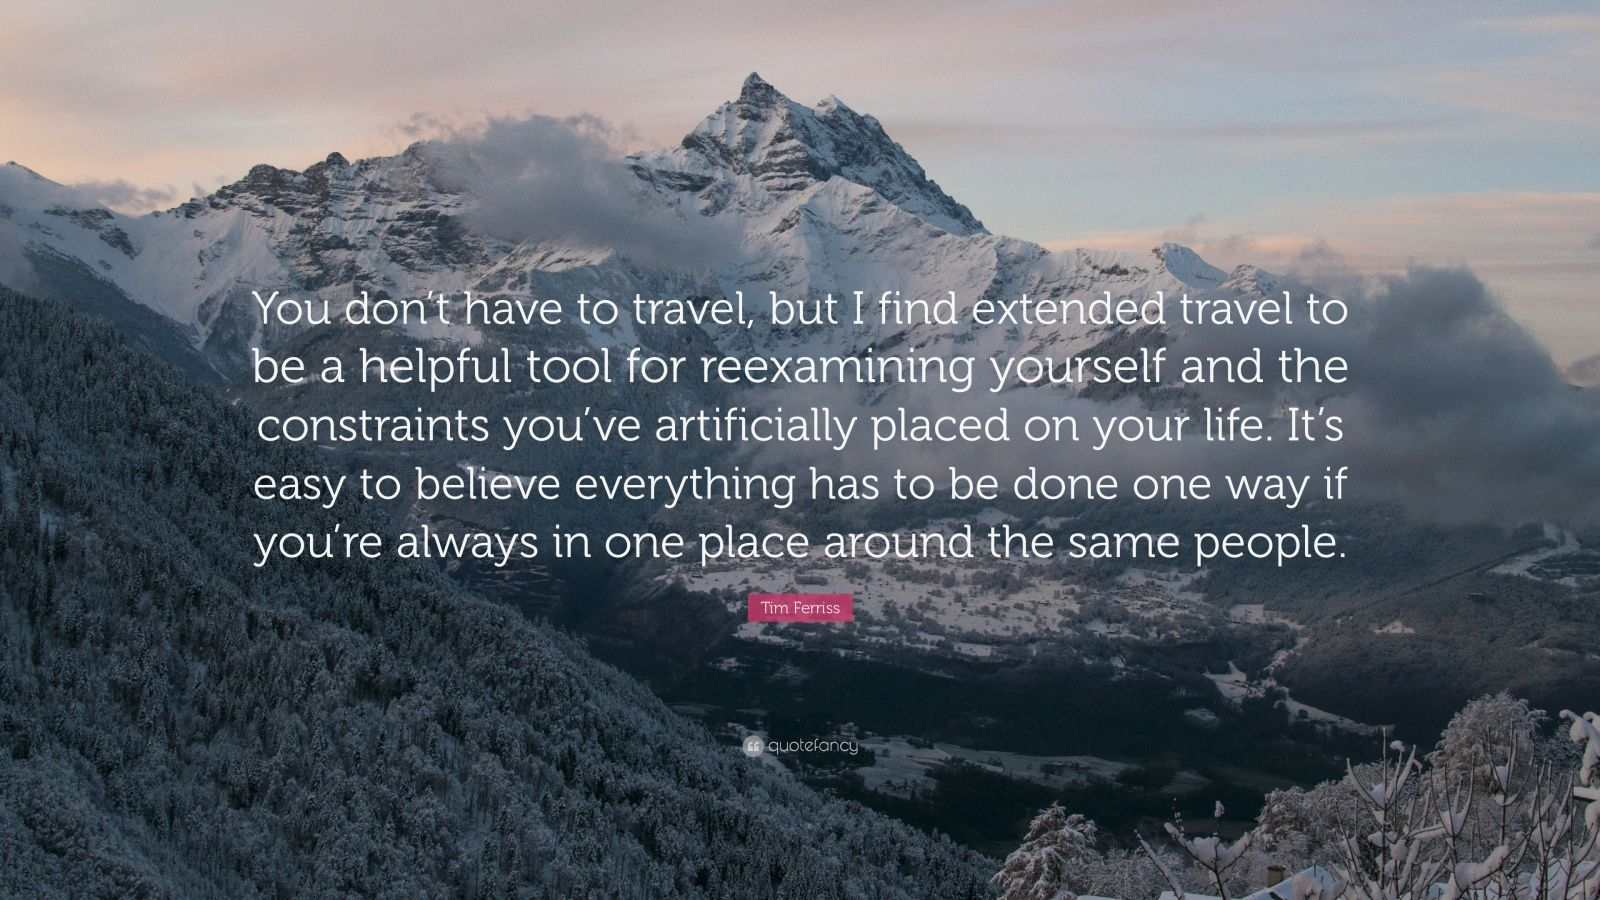 "Tim Ferriss Quote: ""You don't have to travel, but I find extended travel to be a helpful tool for reexamining yourself and the constraints you've artificially placed on your life. It's easy to believe everything has to be done one way if you're always in one place around the same people."""